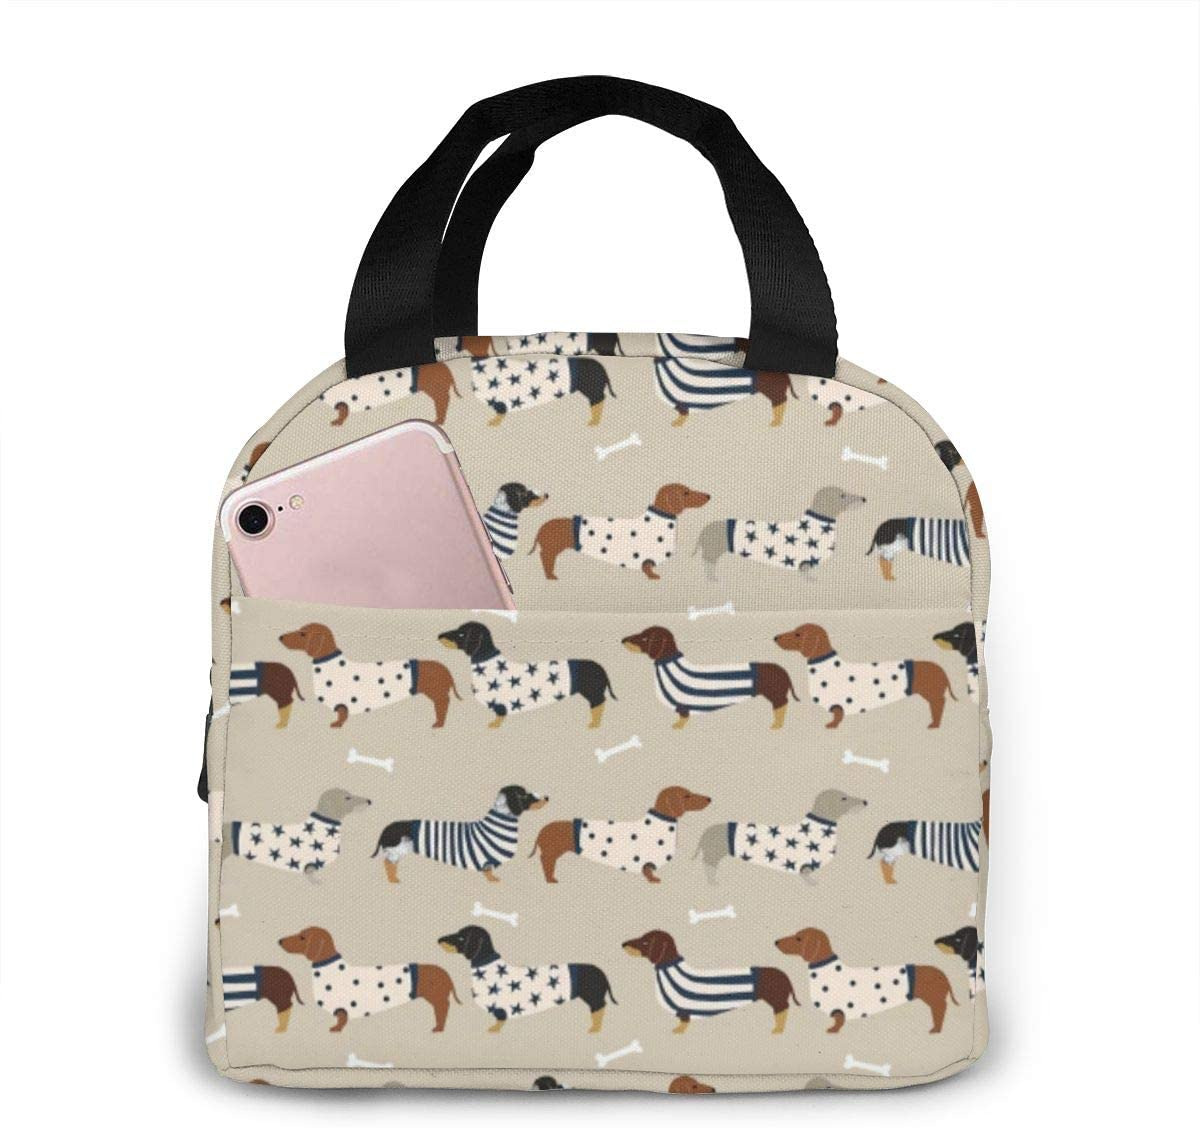 dachshund-gifts-lunch-tote